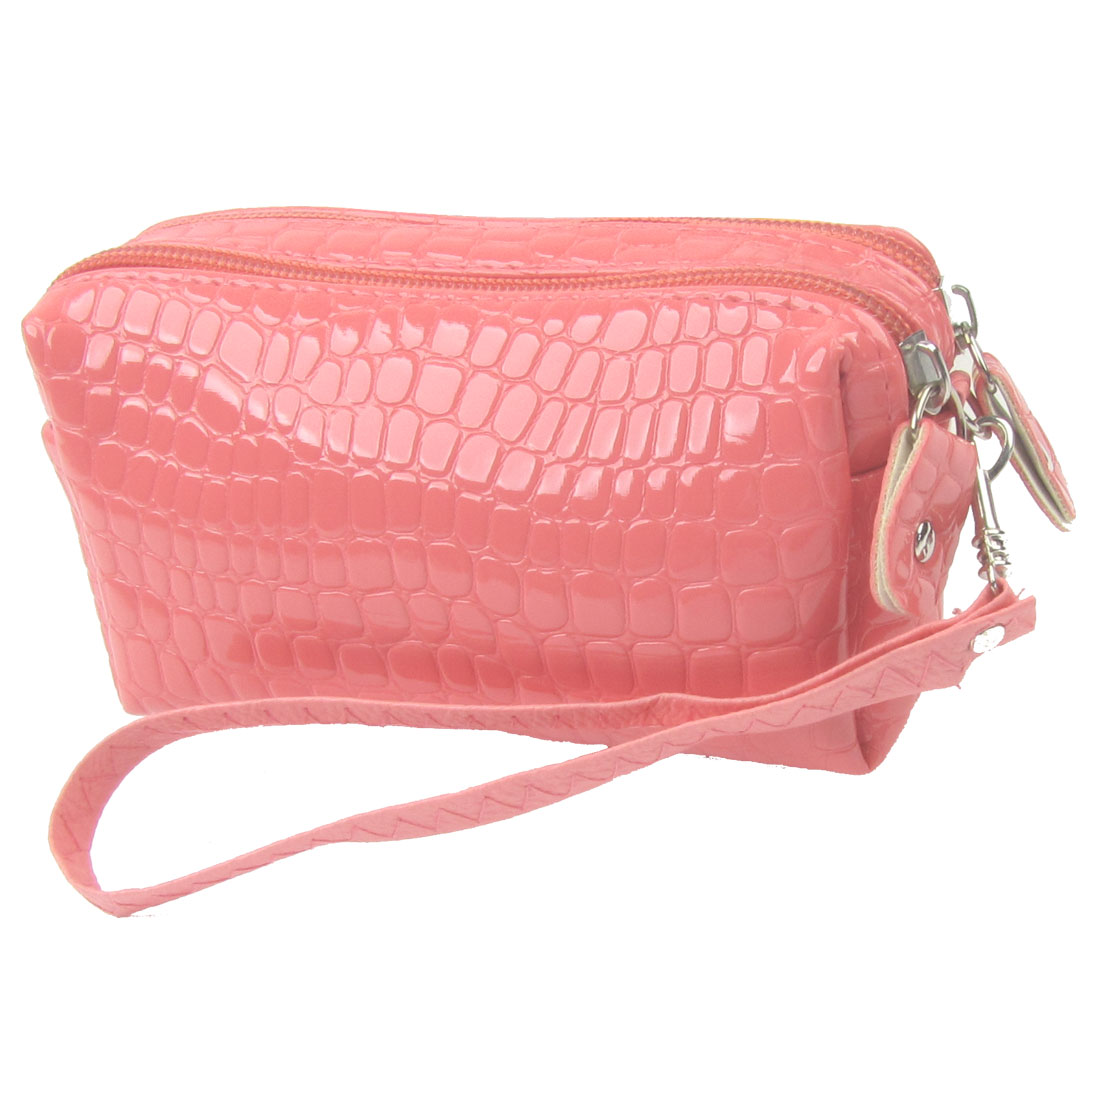 Lady Salmon Pink Faux Leather Crocodile Pattern Zip up Closure Wallet Purse